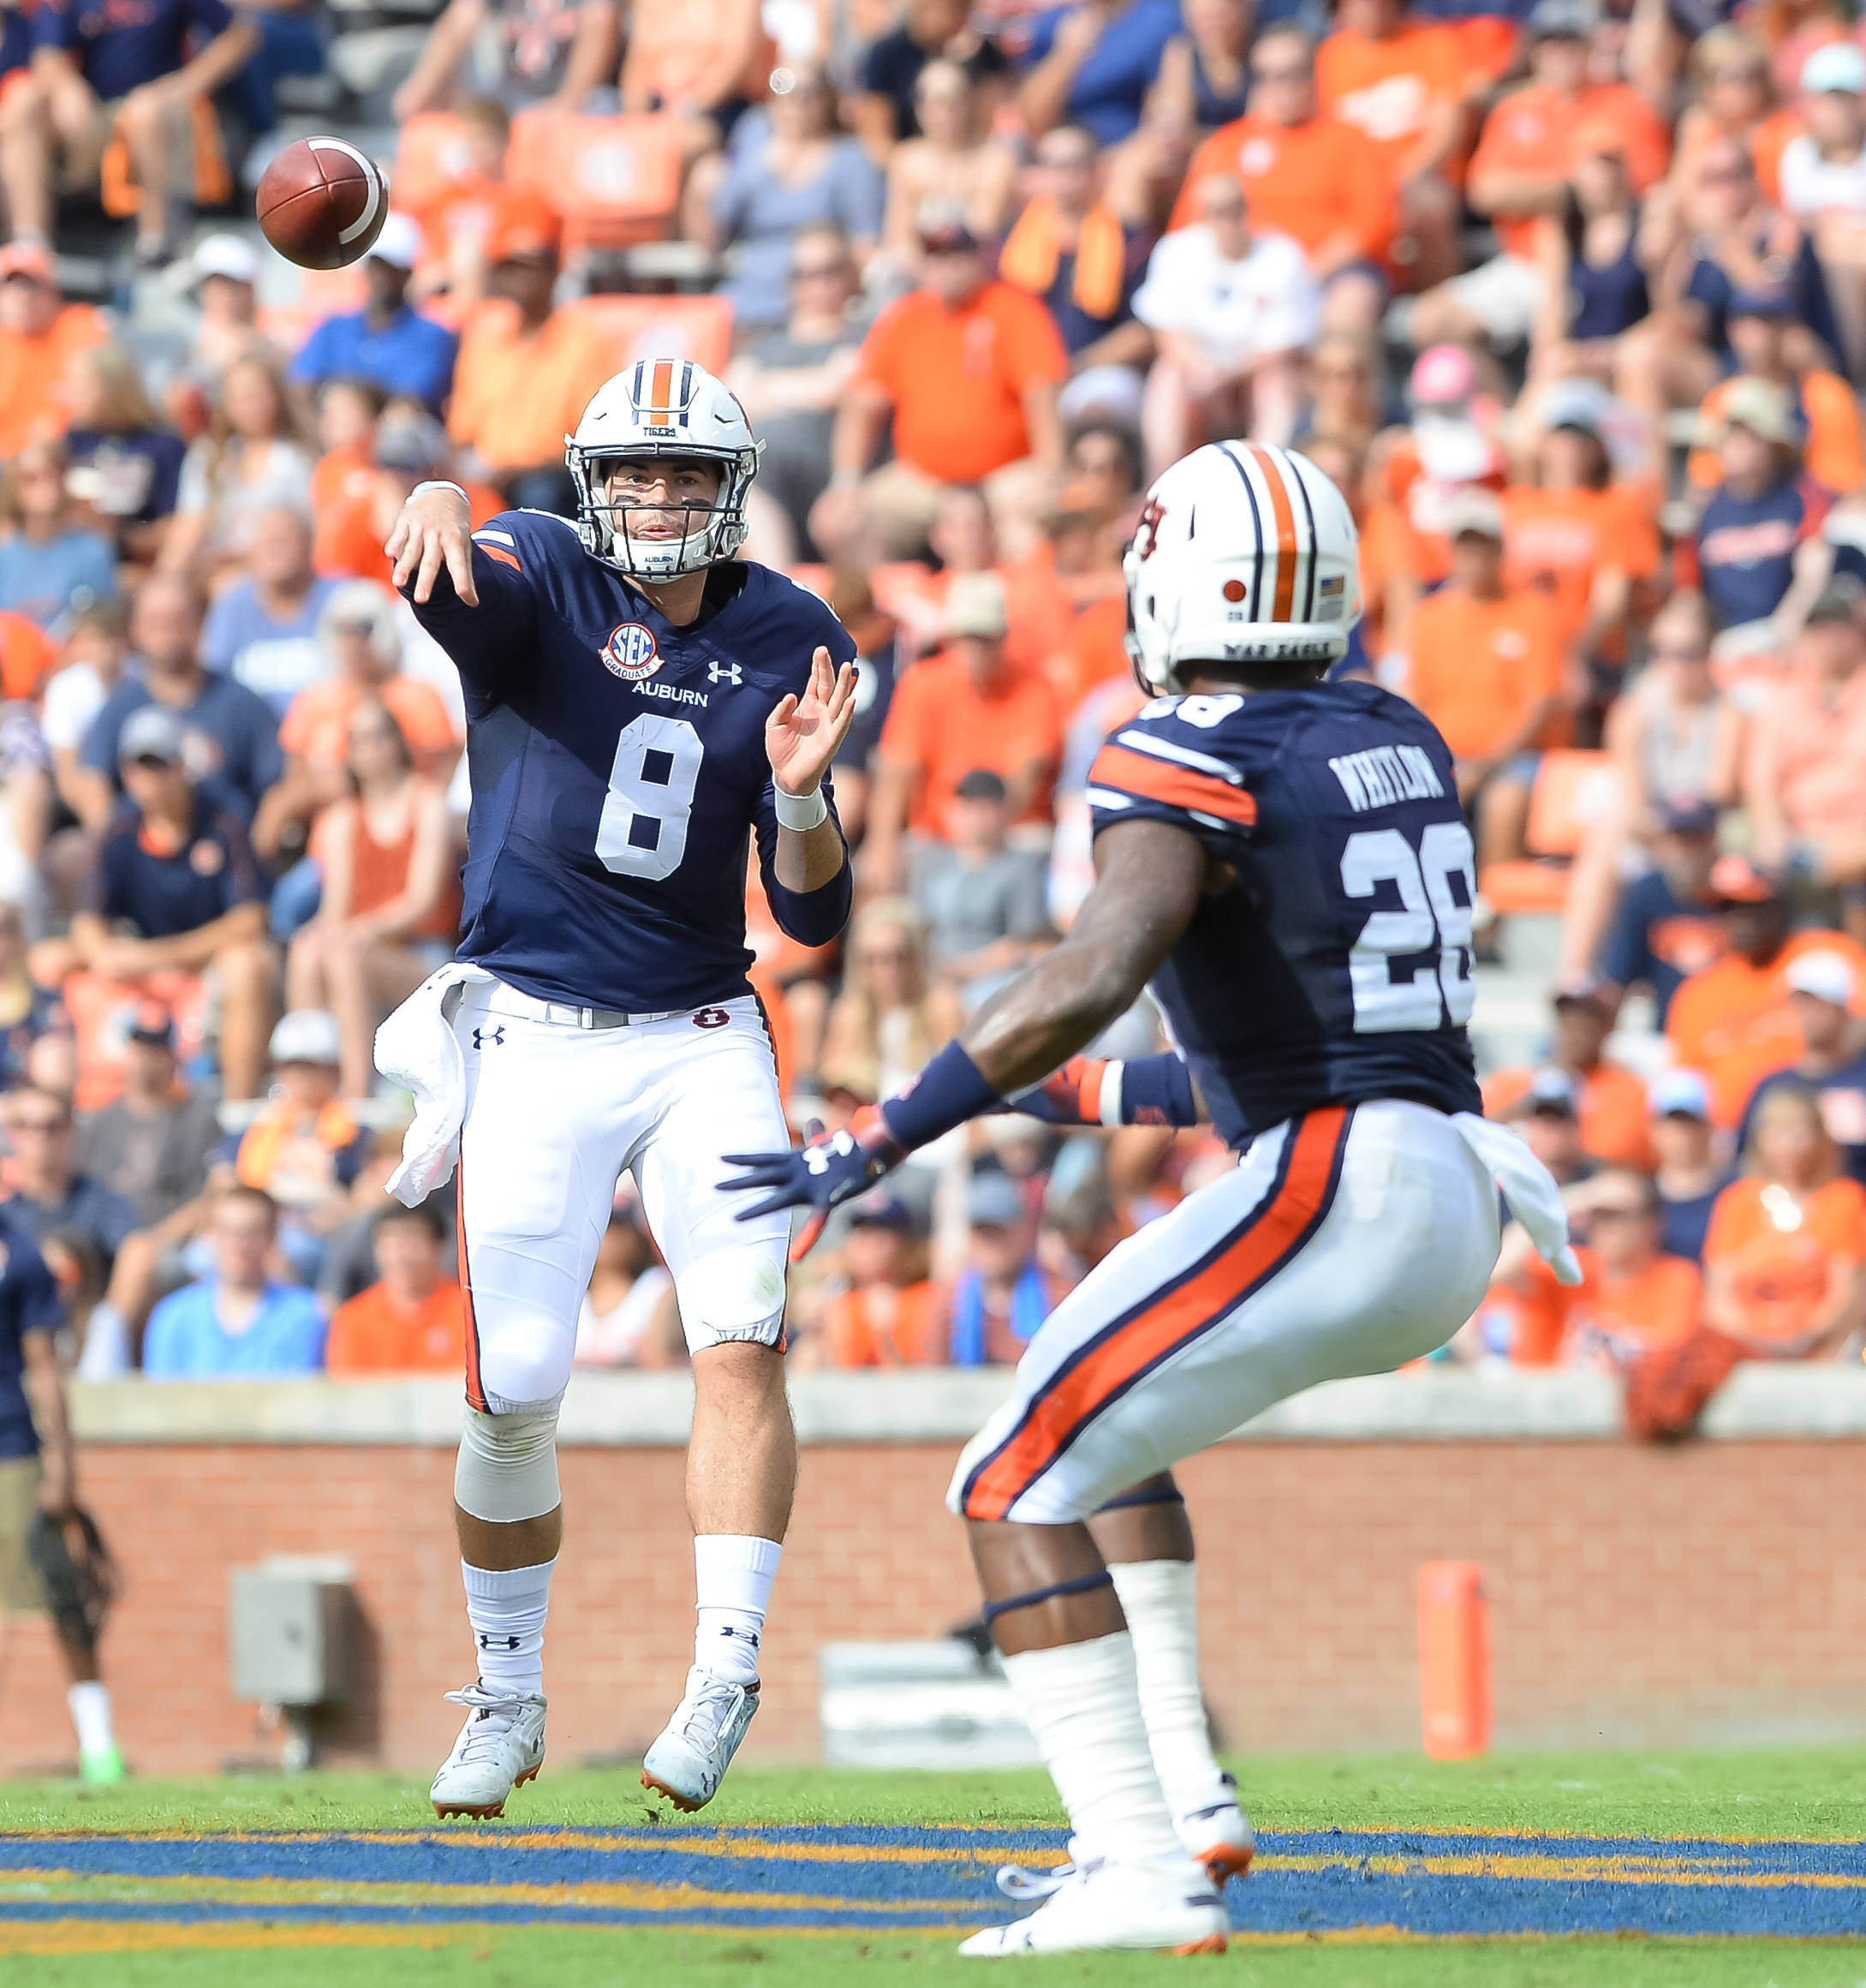 Auburn Tigers quarterback Jarrett Stidham (8) throws during the first half of Saturday's game, at Jordan Hare Stadium in Auburn AL. Daily Mountain Eagle -  Jeff Johnsey